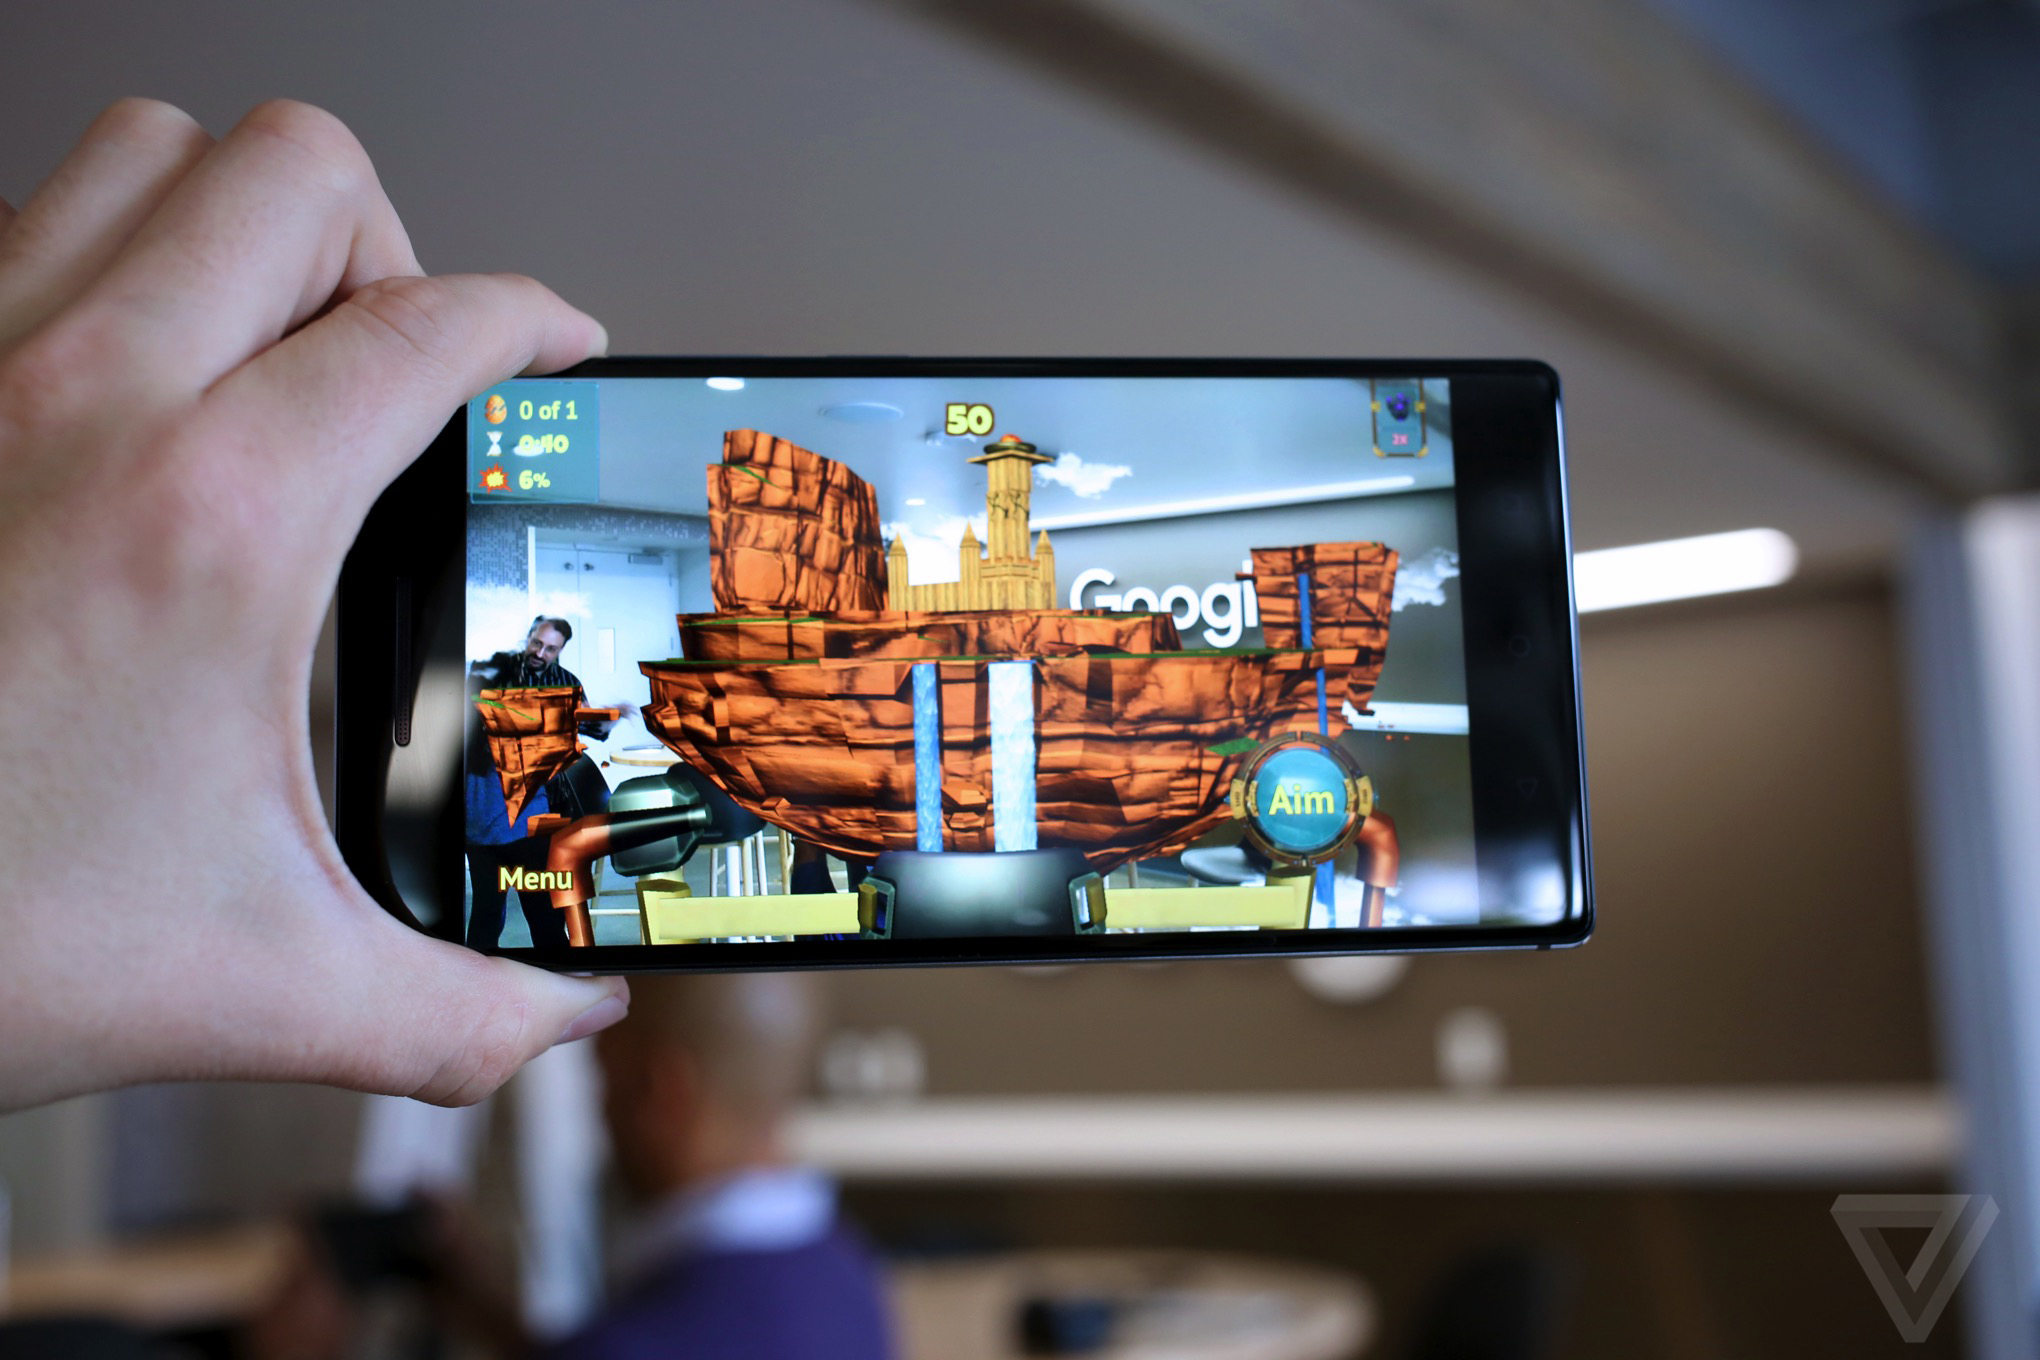 With First Tango Phone, Google Launches 35 Augmented Reality Apps